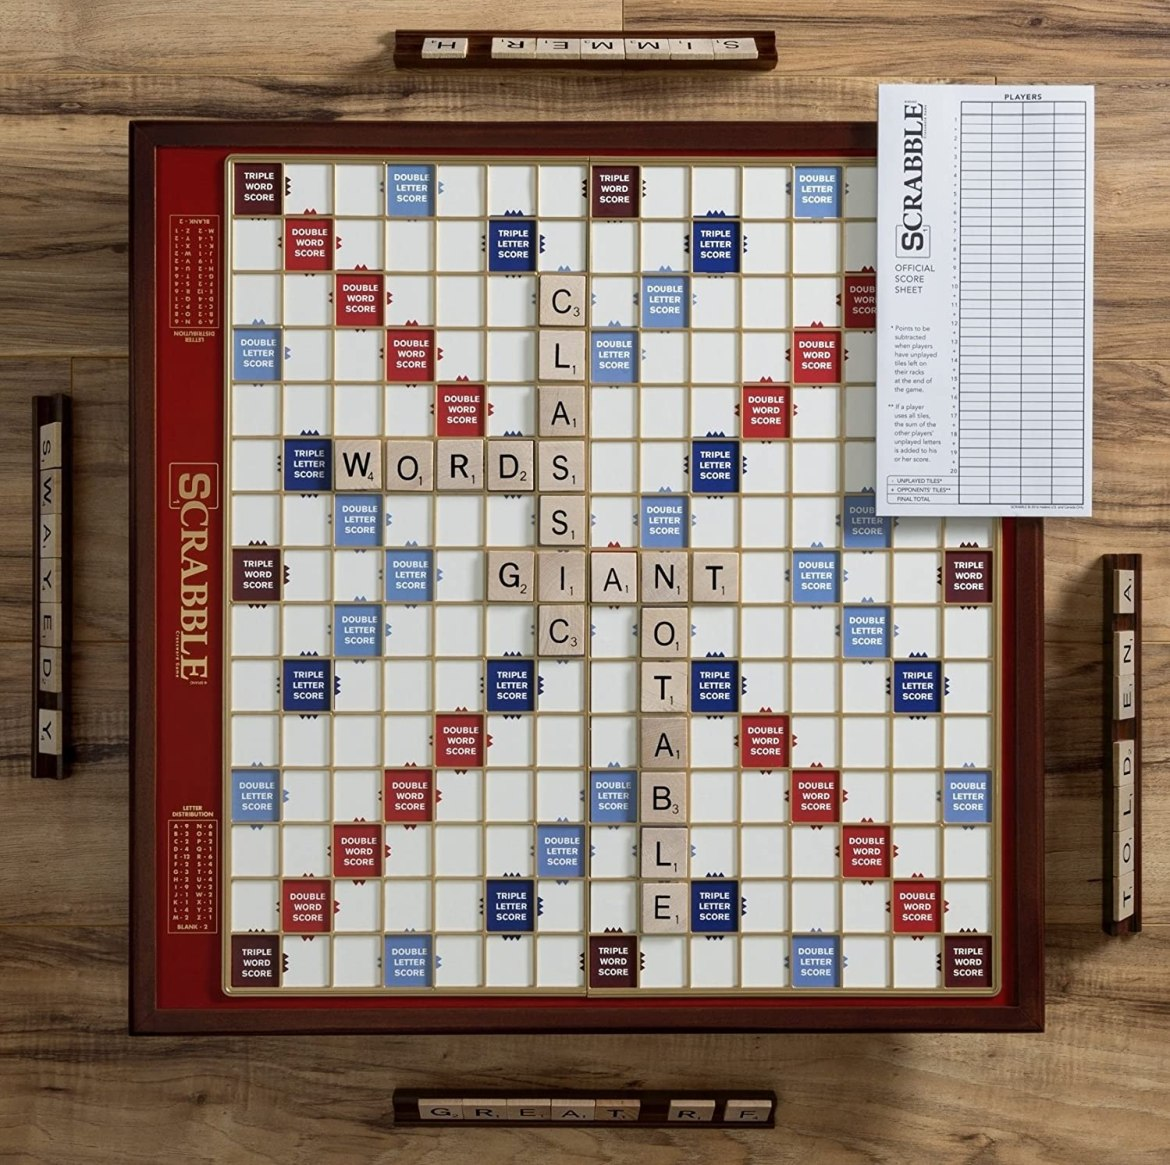 10 Board Games to Play On Family Game Night